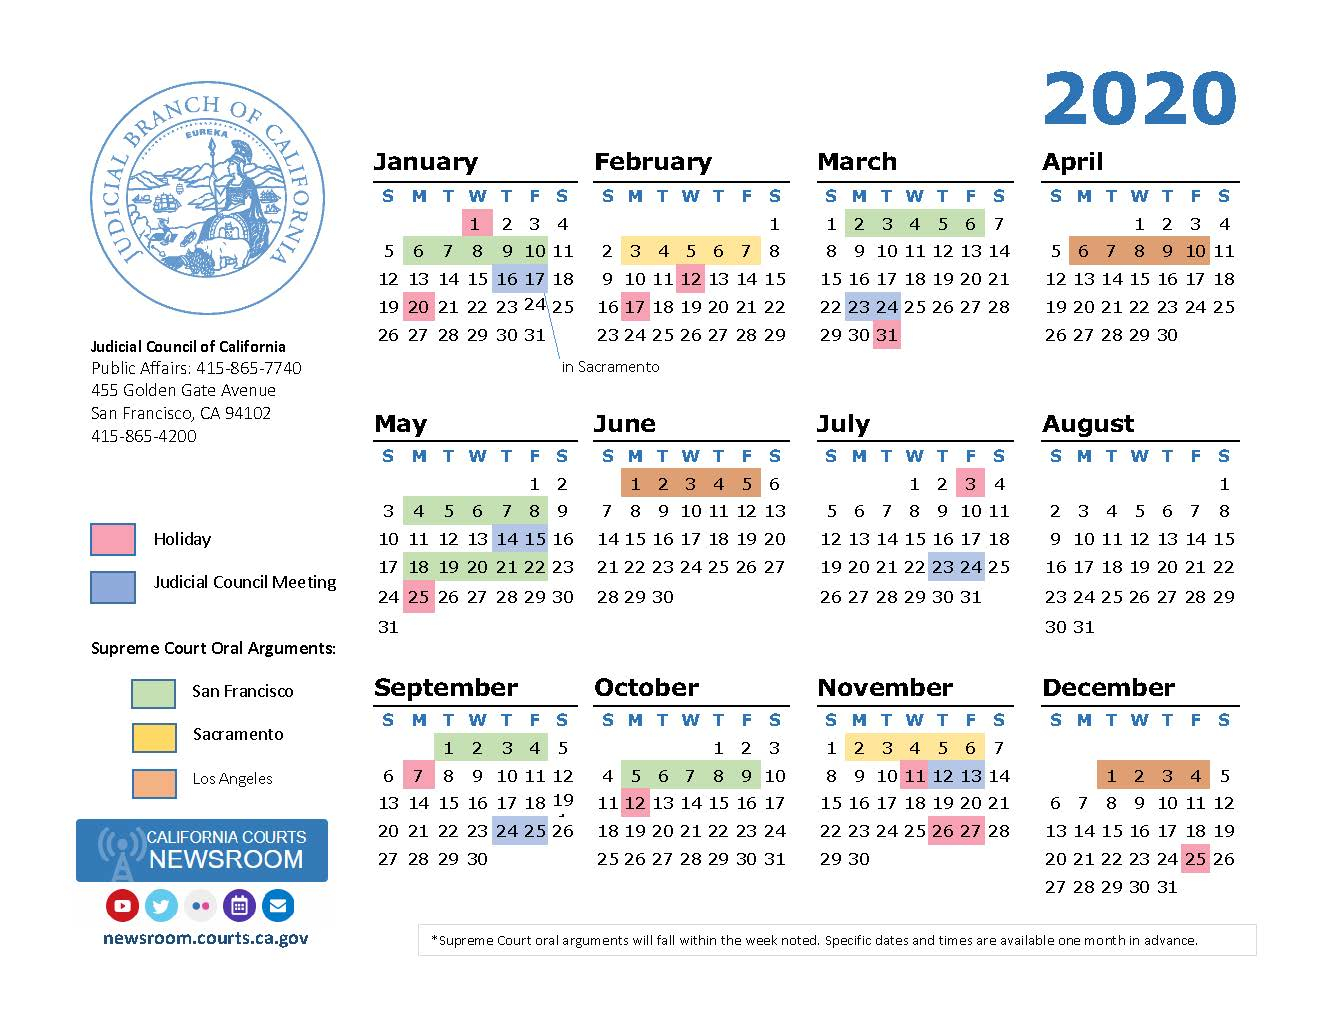 2020 California Courts Calendar | California Courts Newsroom within Los Angeles Superior Court Calendar